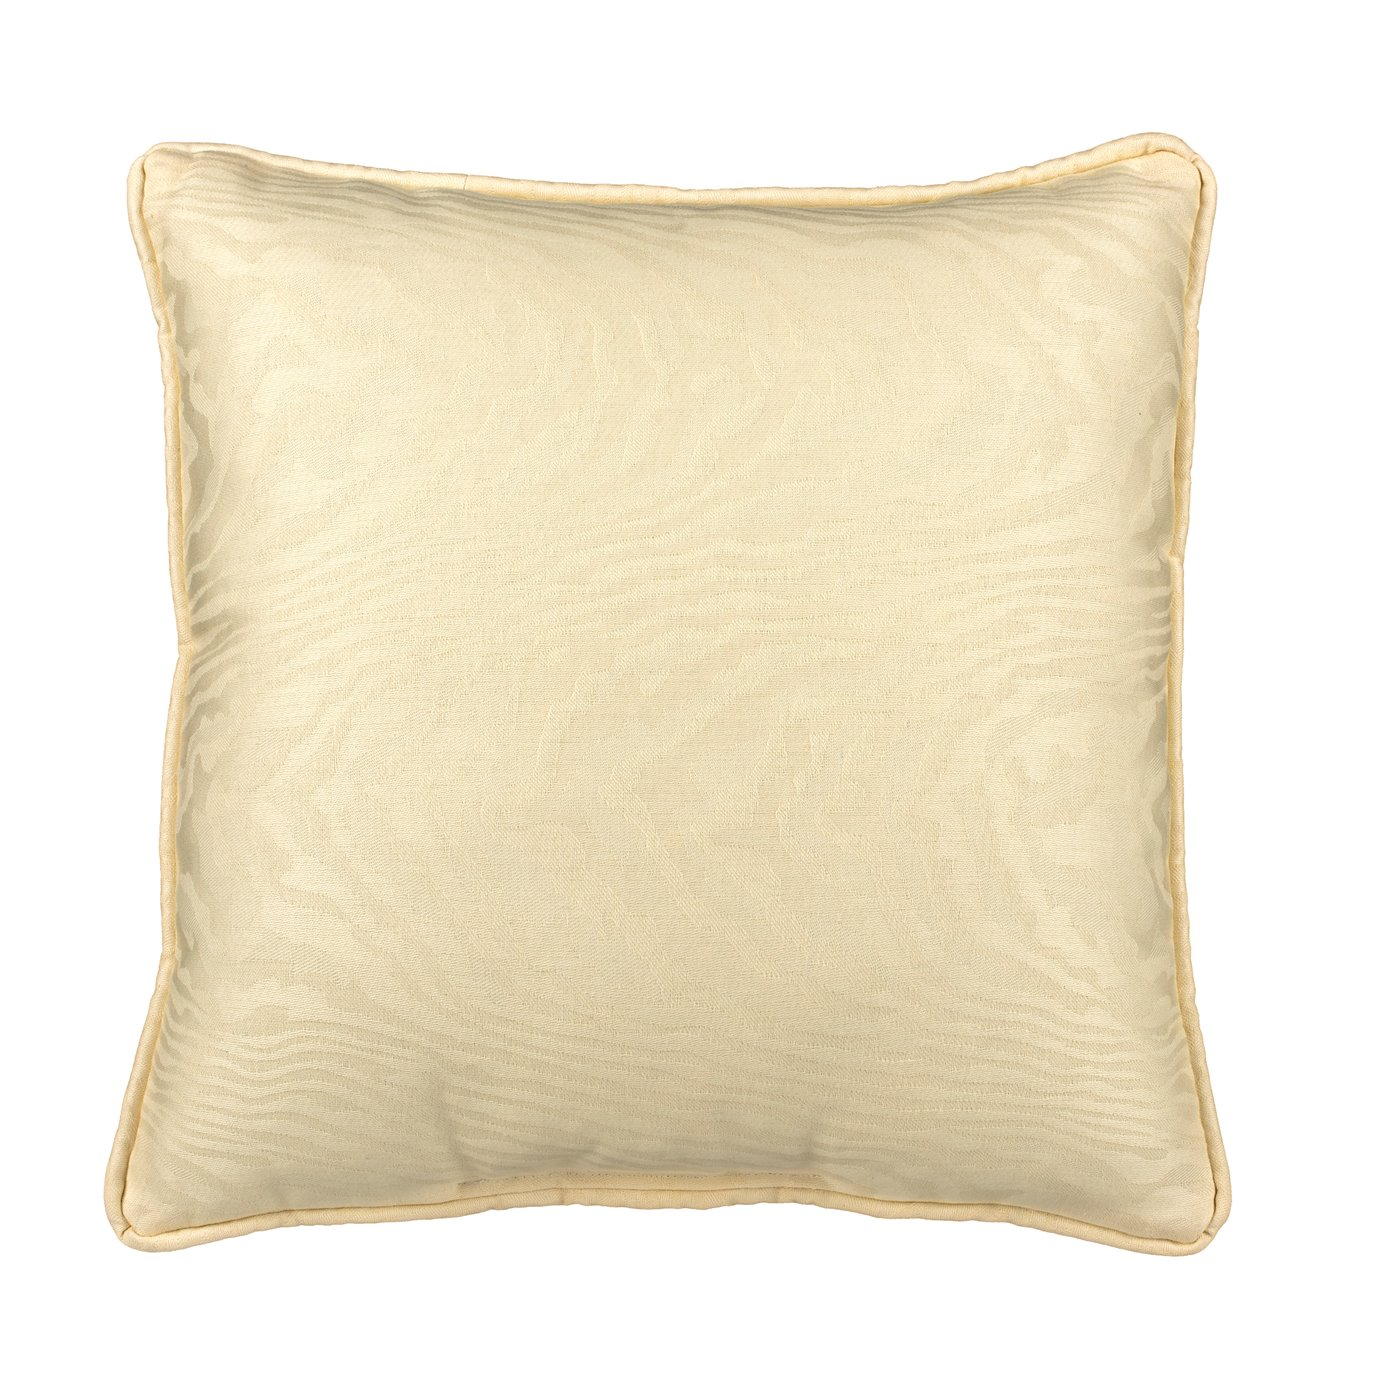 Ivory Moire Square Pillow